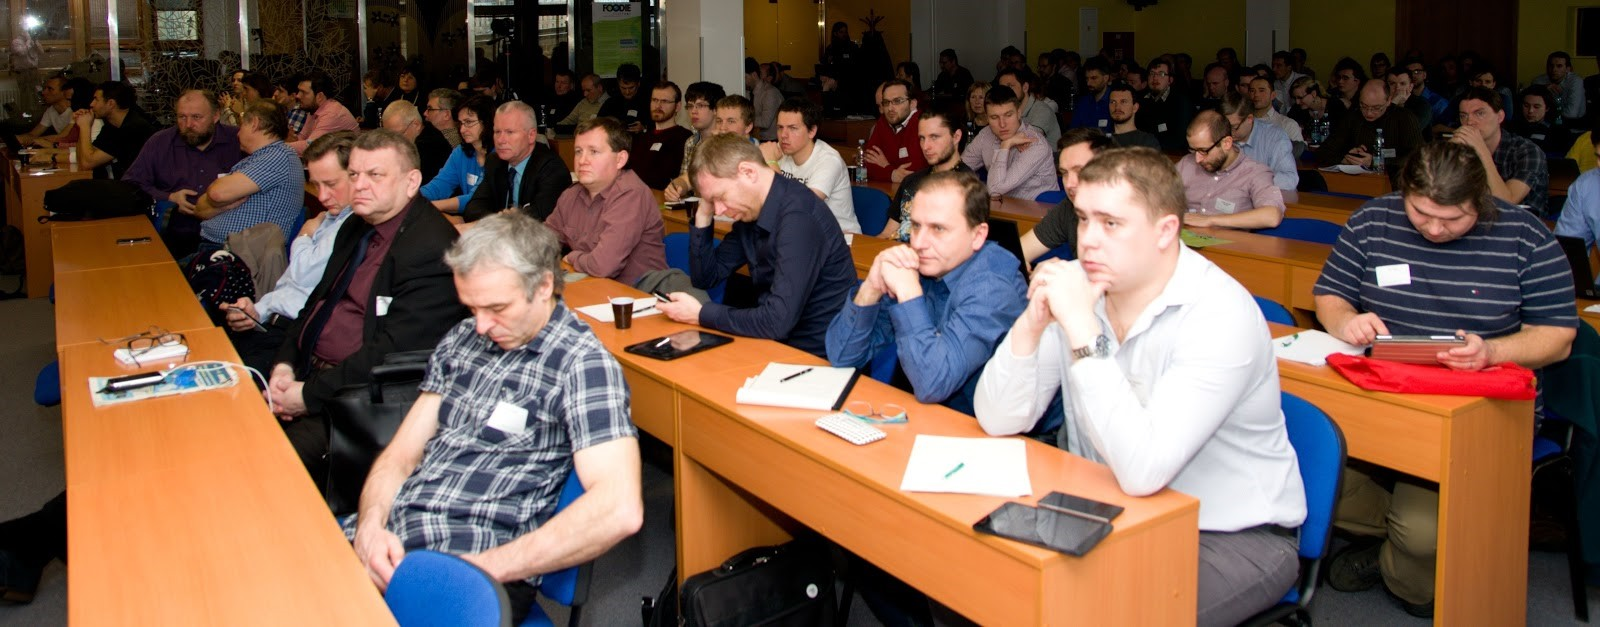 Workshop: Open Data as an Opportunity for the Commercial Sector